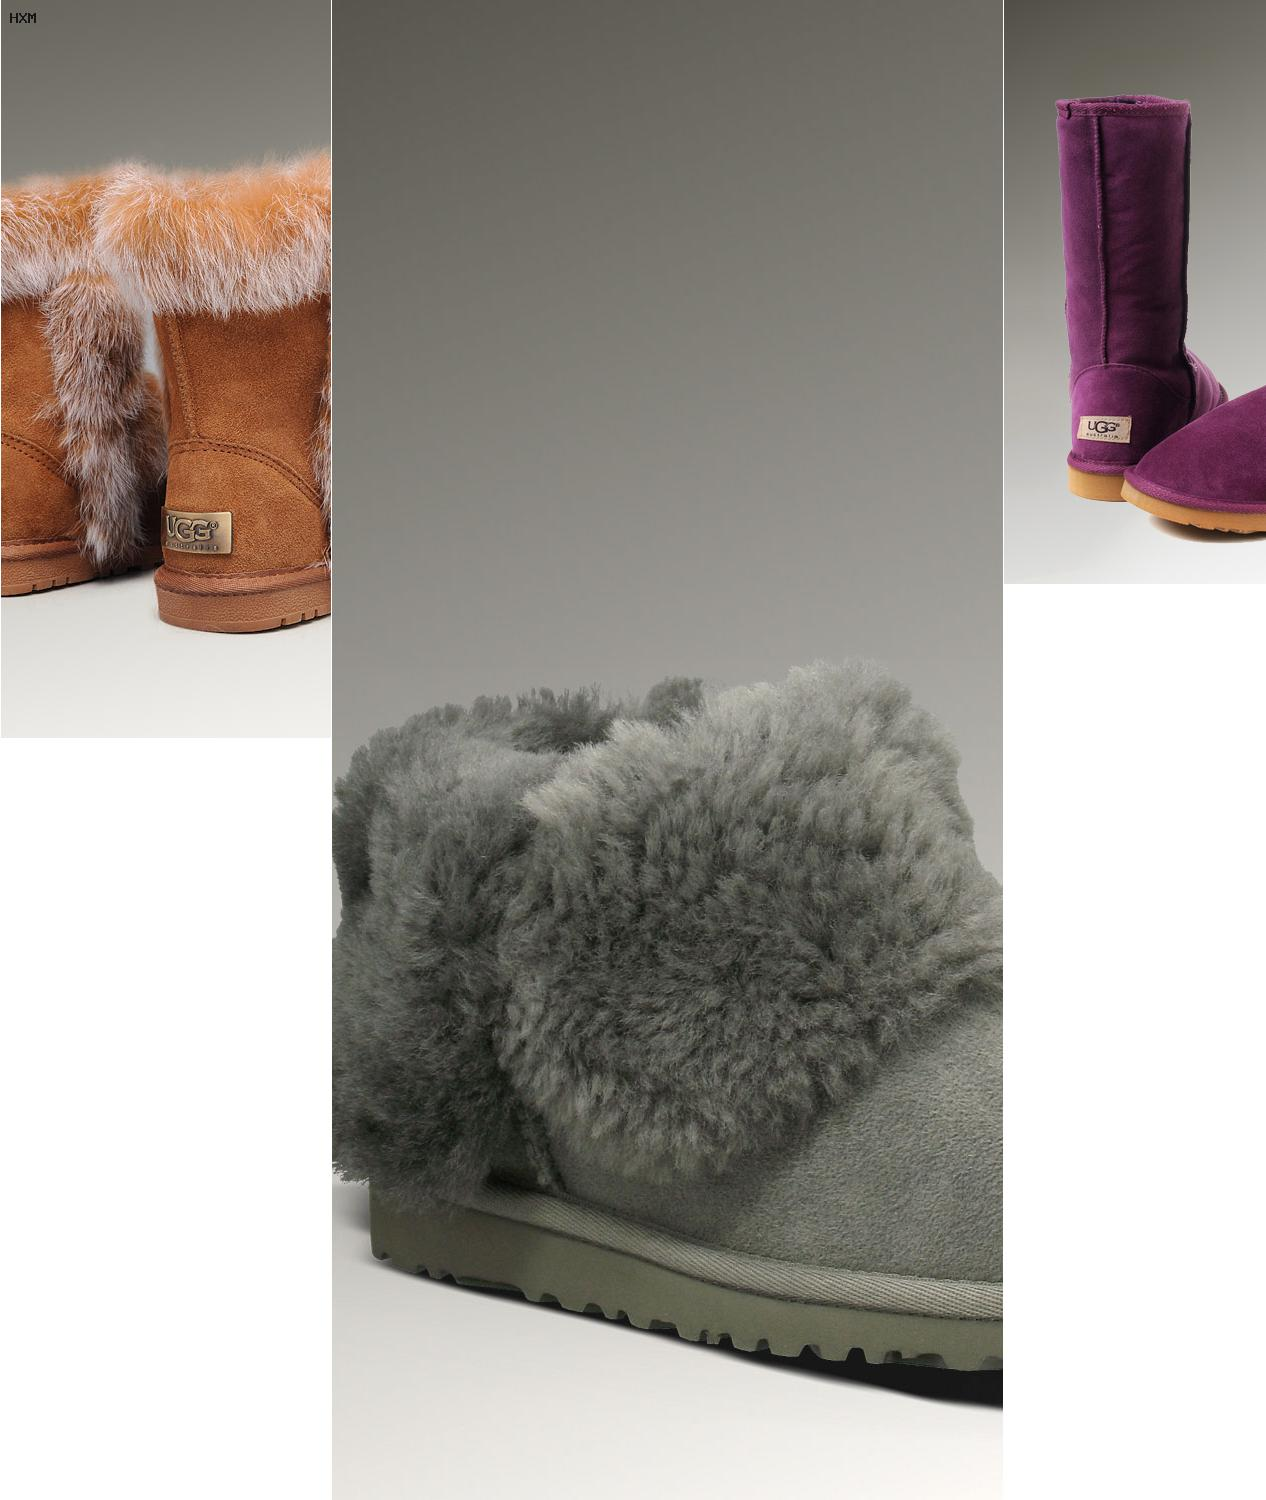 nouvelle collection ugg 2018